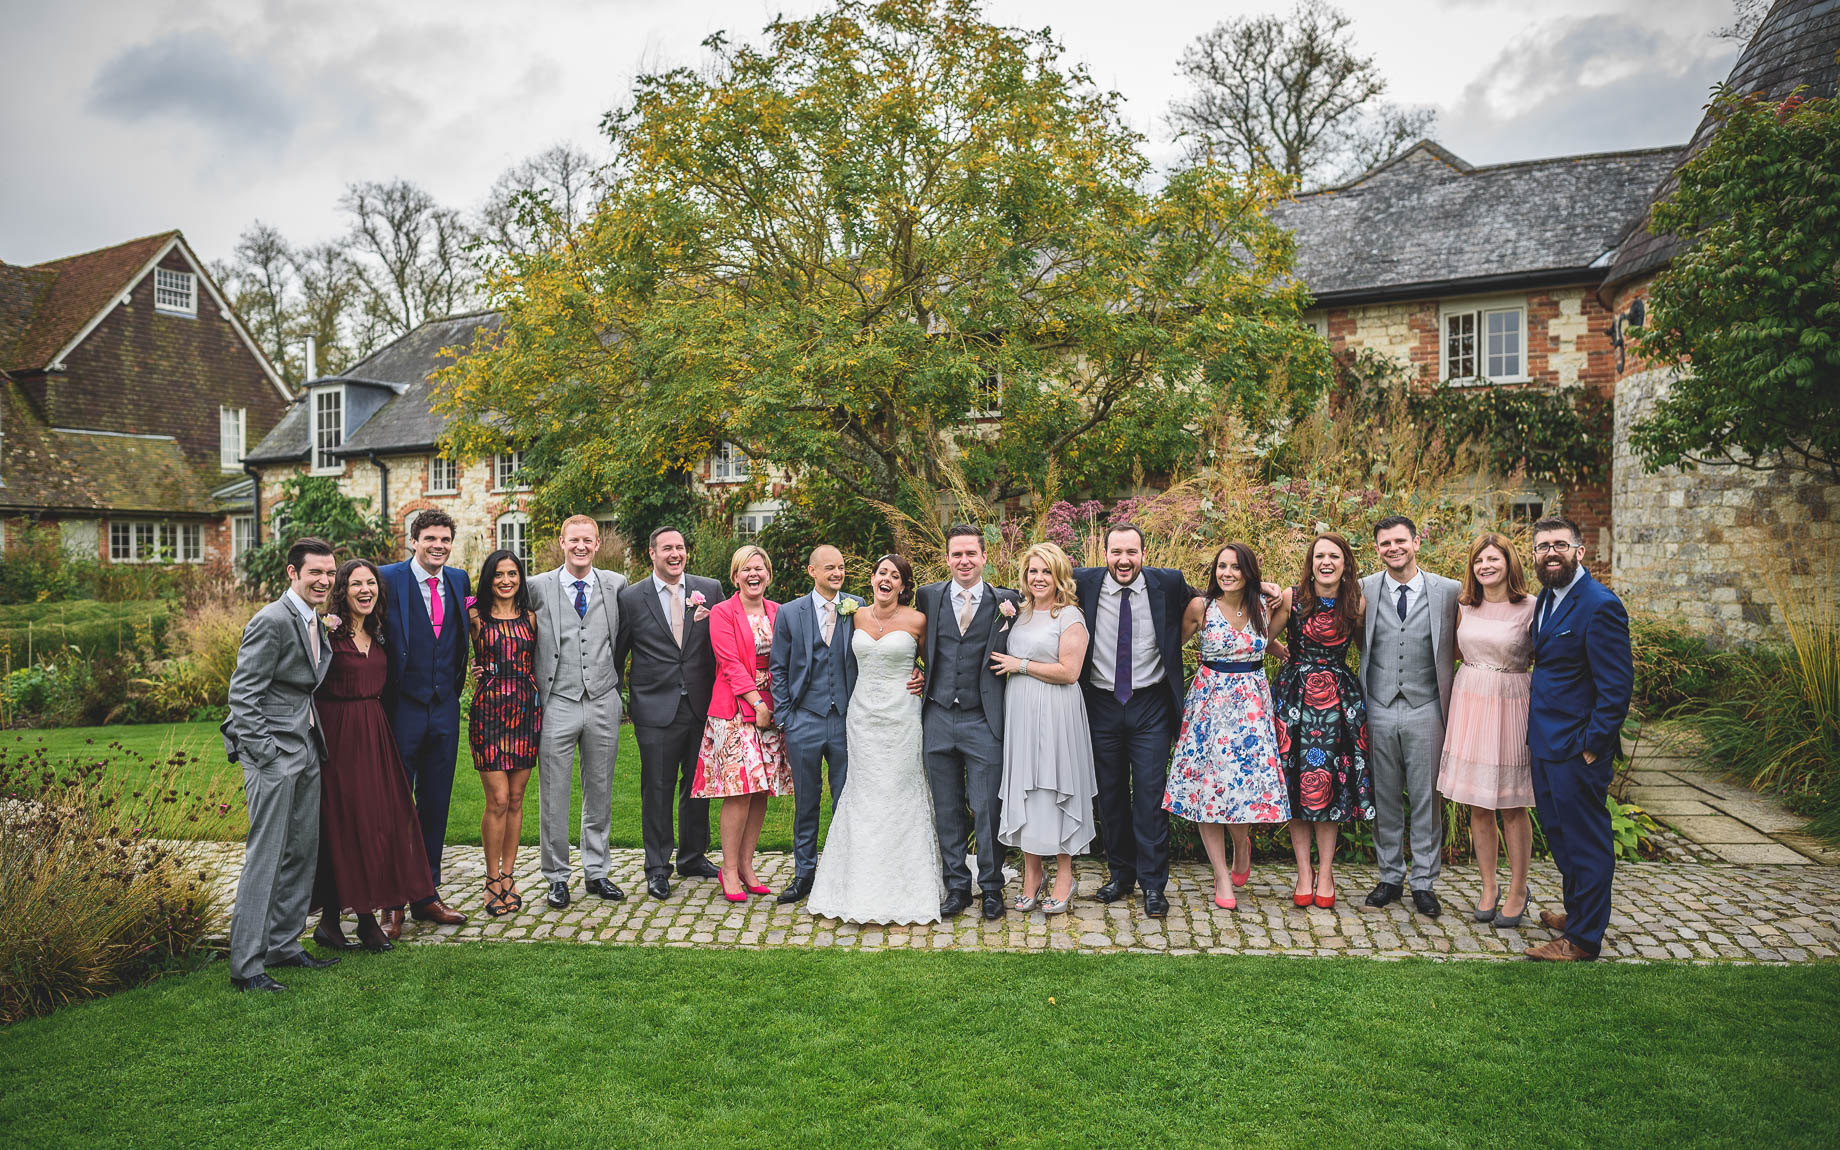 Bury Court Barn wedding photography - Guy Collier Photography - Karen and John (109 of 166)